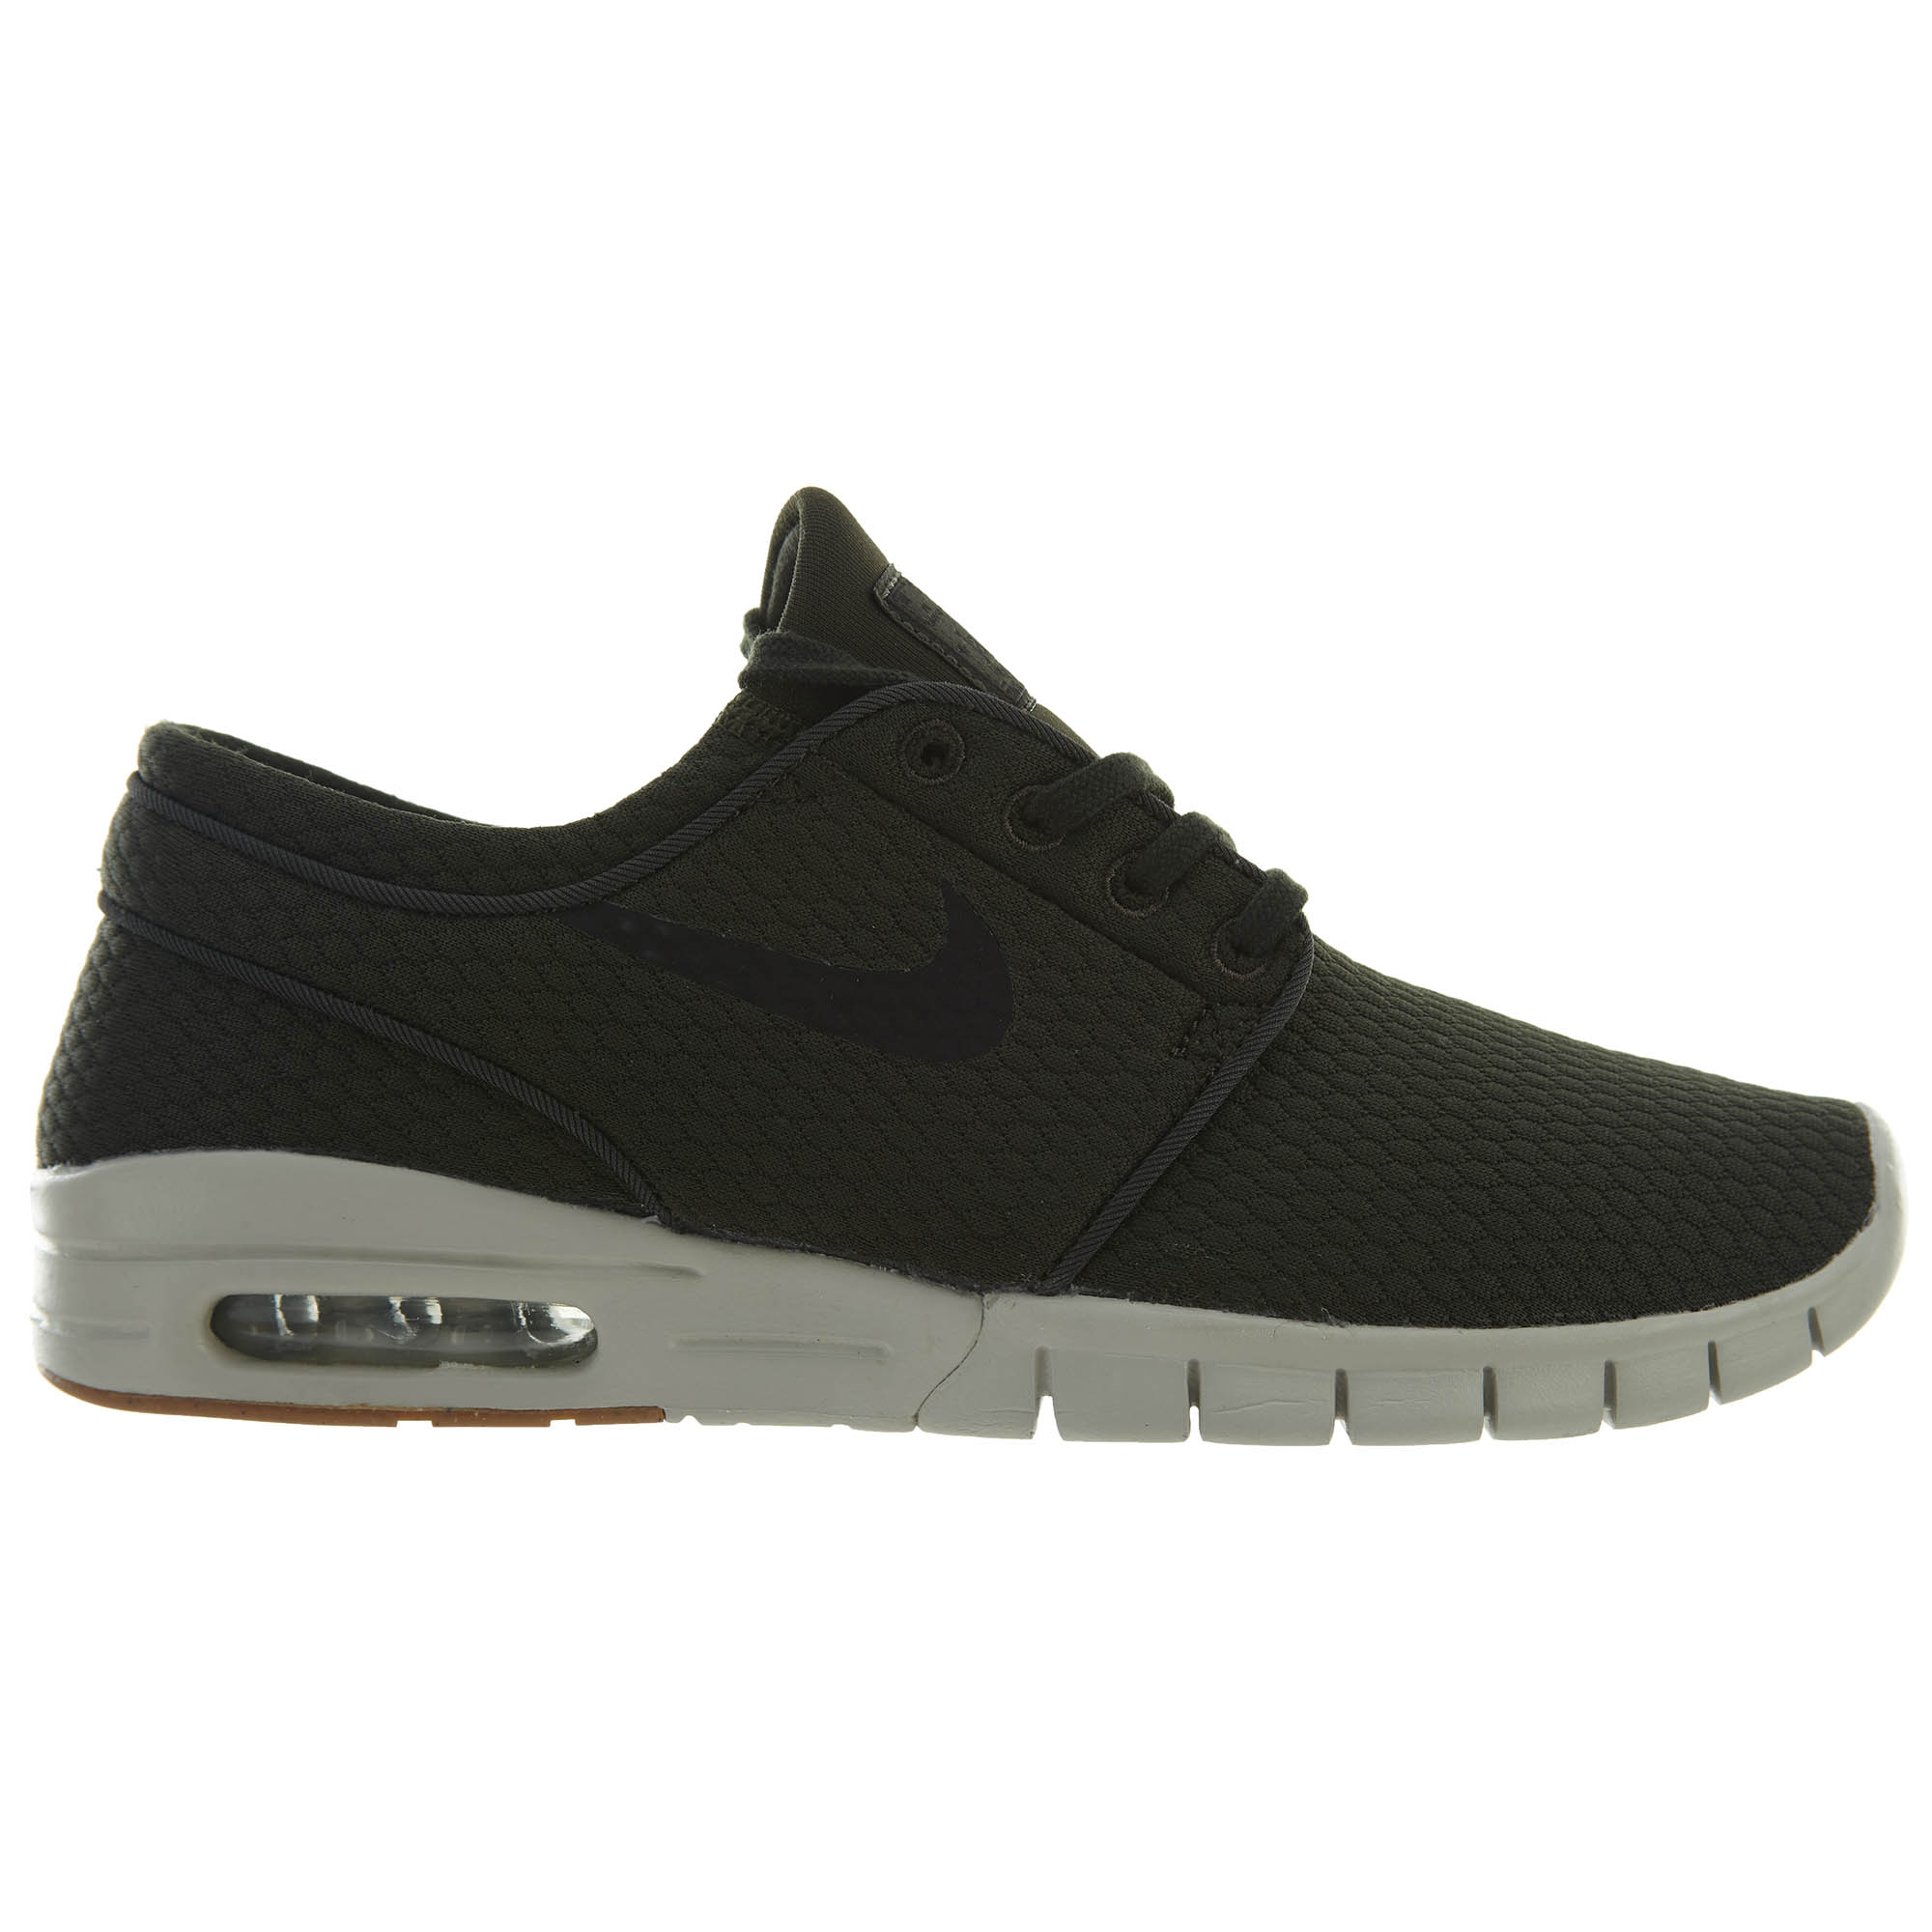 cheaper f0d35 75c8f Nike-Stefan-Janoski-Max-Sequoia-Black-Gum-Medium-Brown.jpg